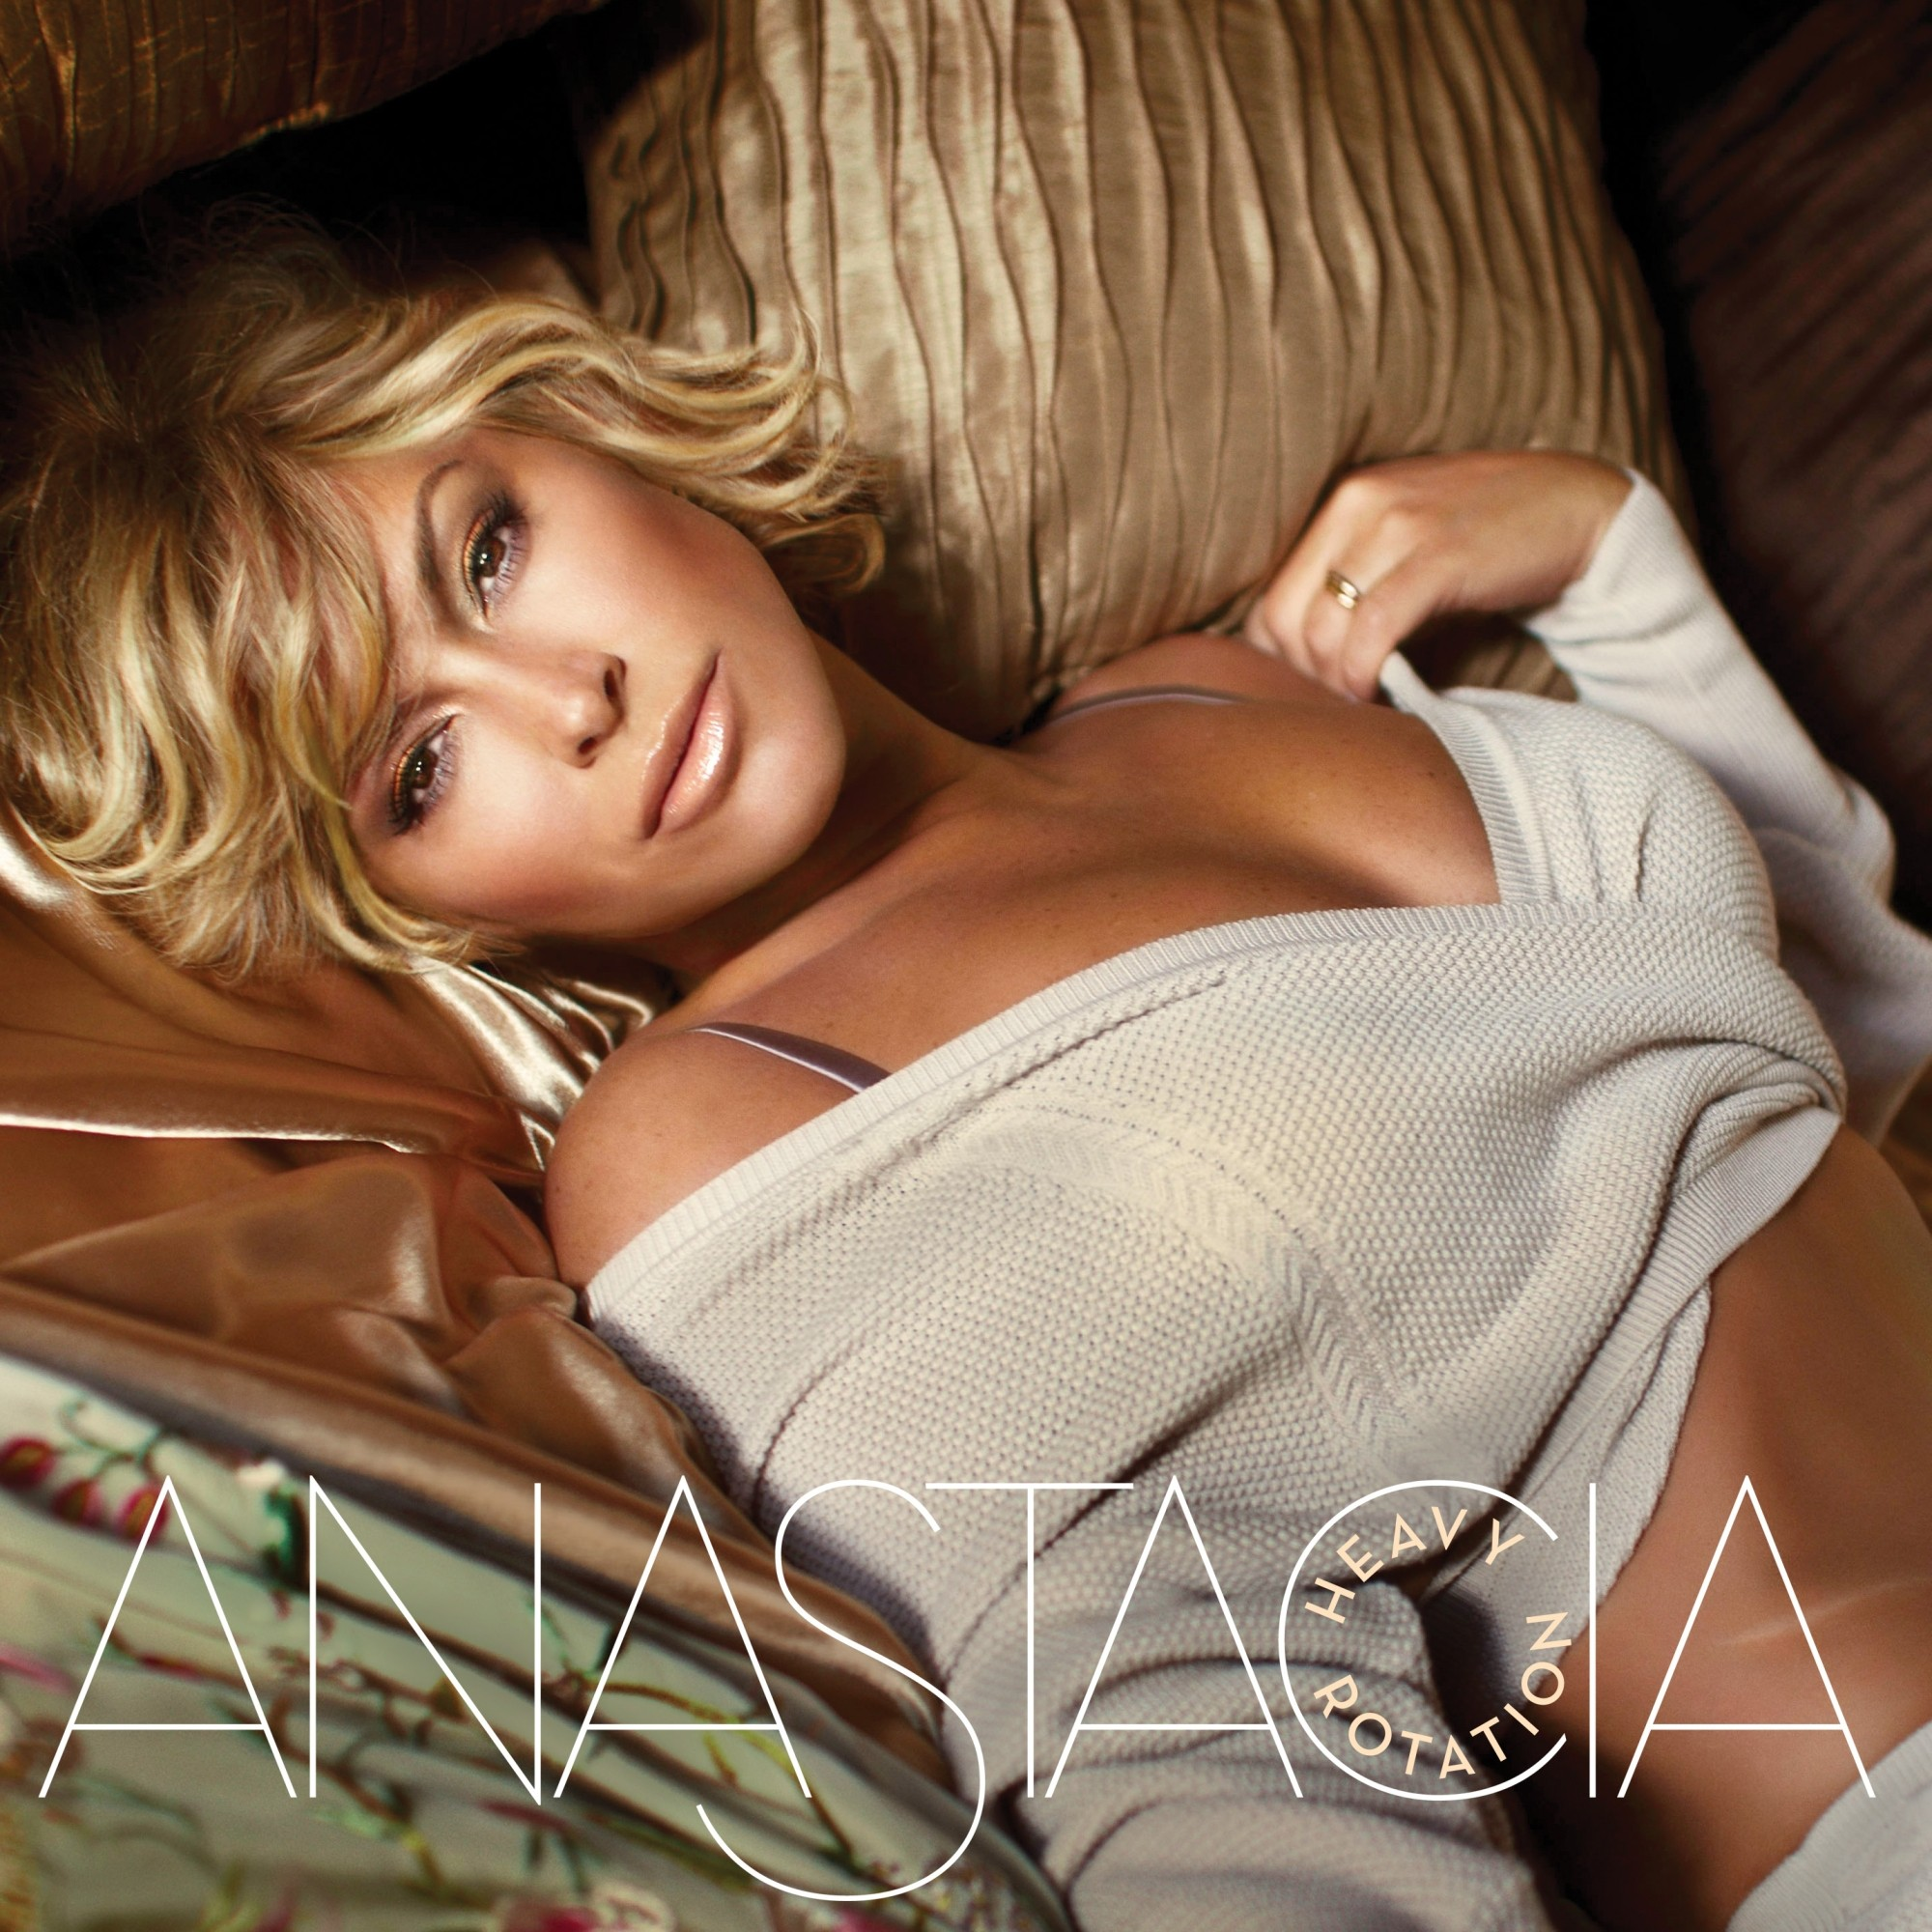 [AllCDCovers]_anastacia_heavy_rotation_2008_retail_cd-front.jpg